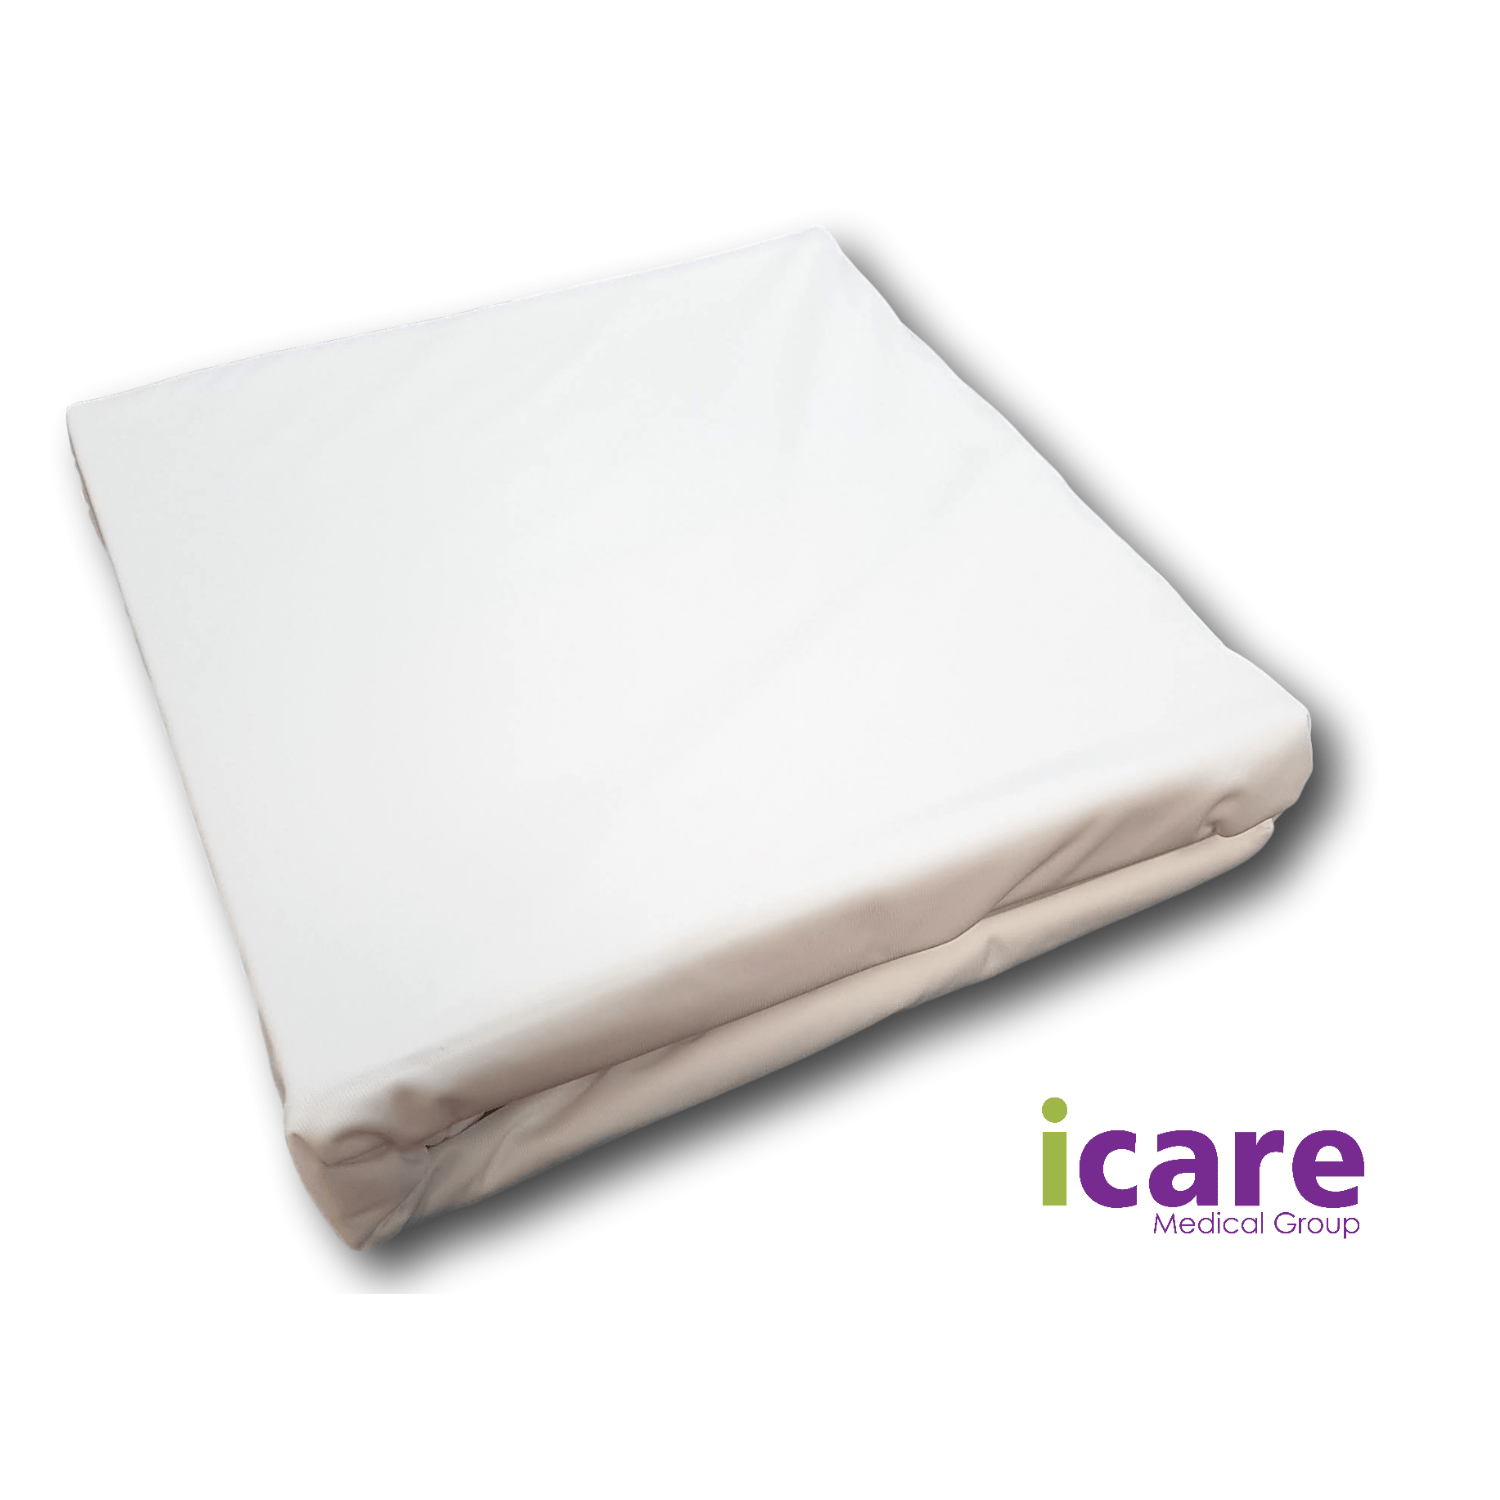 Fully Enclosed Mattress Cover